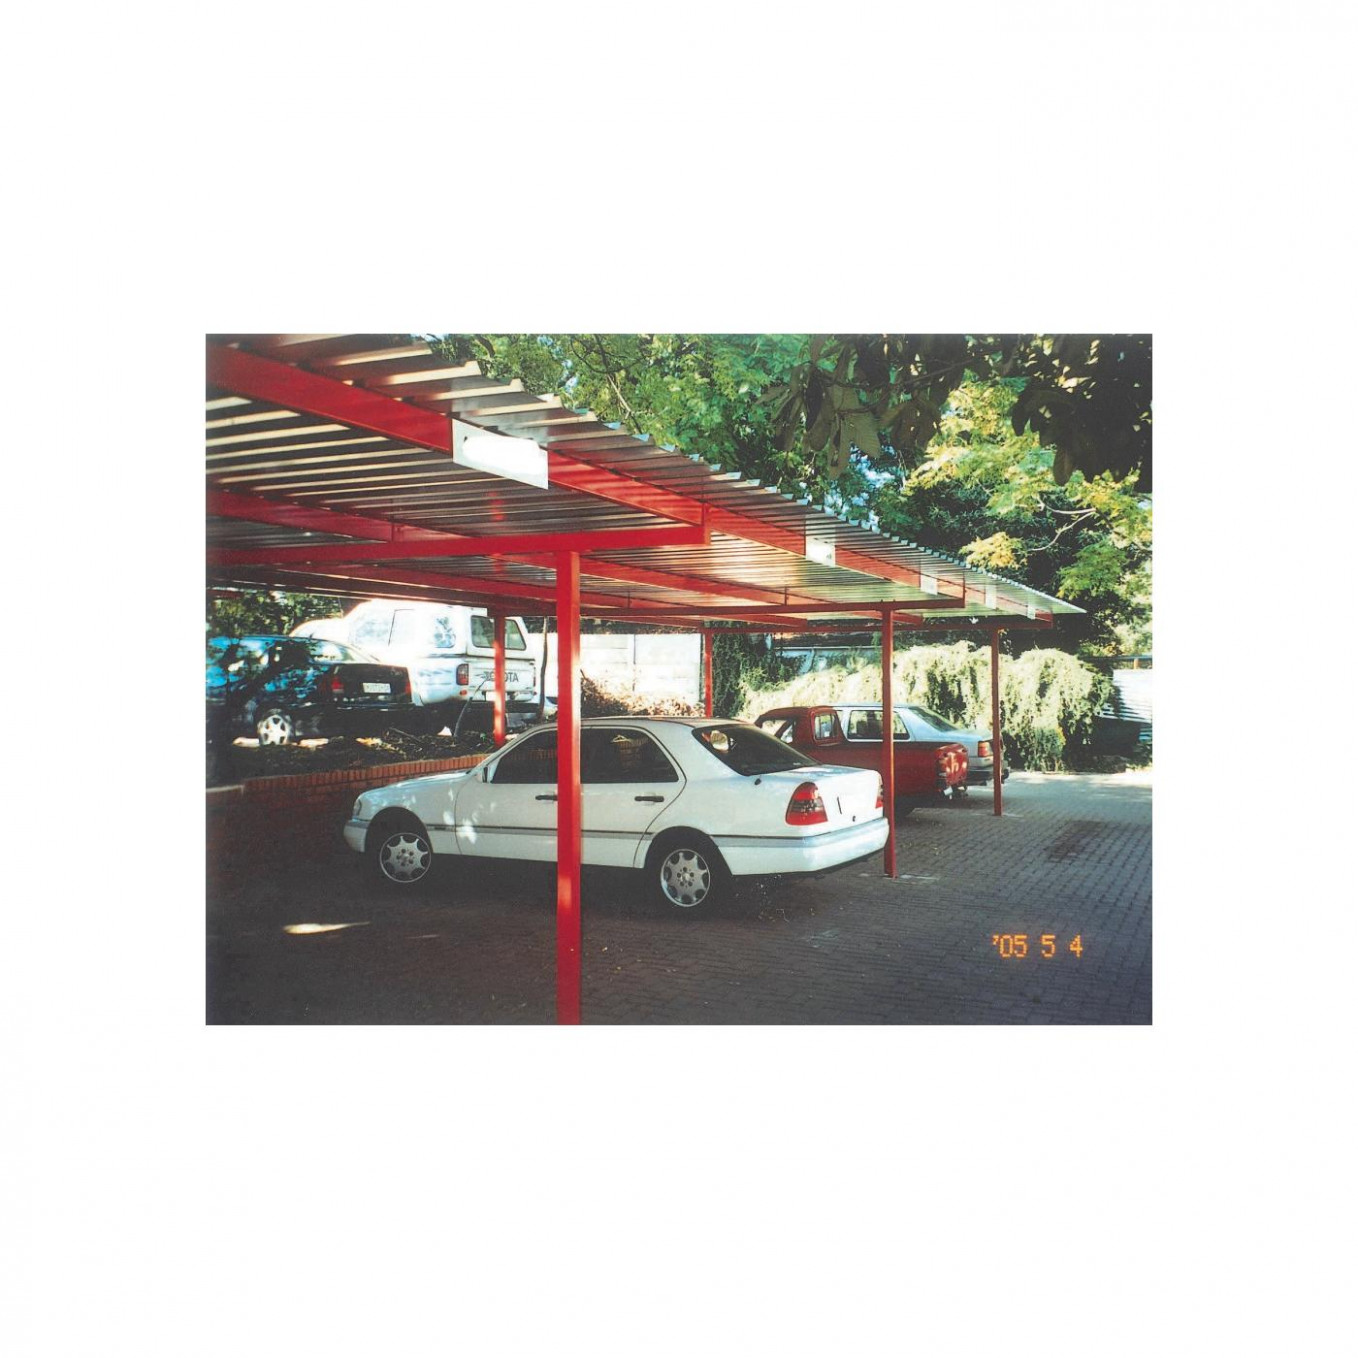 CARPORTS CARPENTRY | LEROY MERLIN South Africa Carports Decorating Equipment